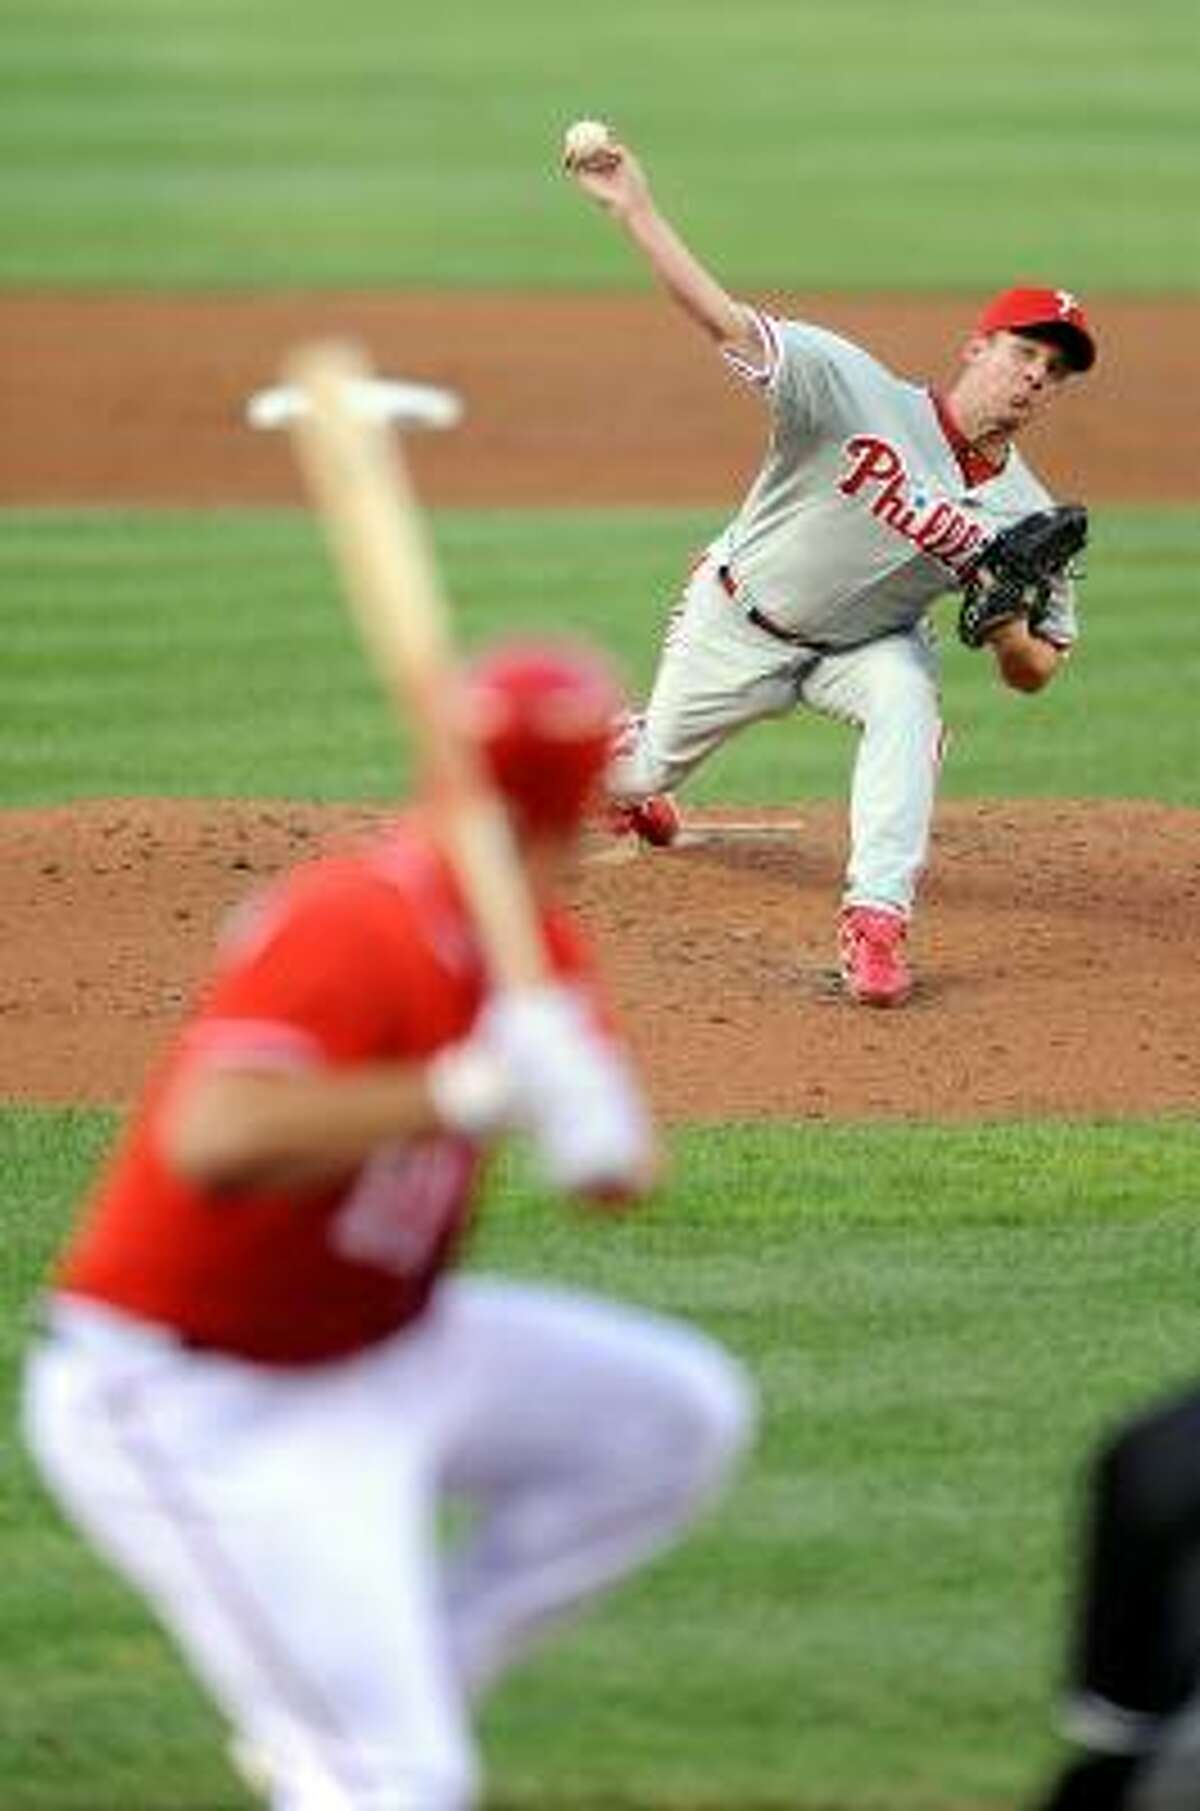 Roy Oswalt faced the Nationals in his first outing with the Phillies.